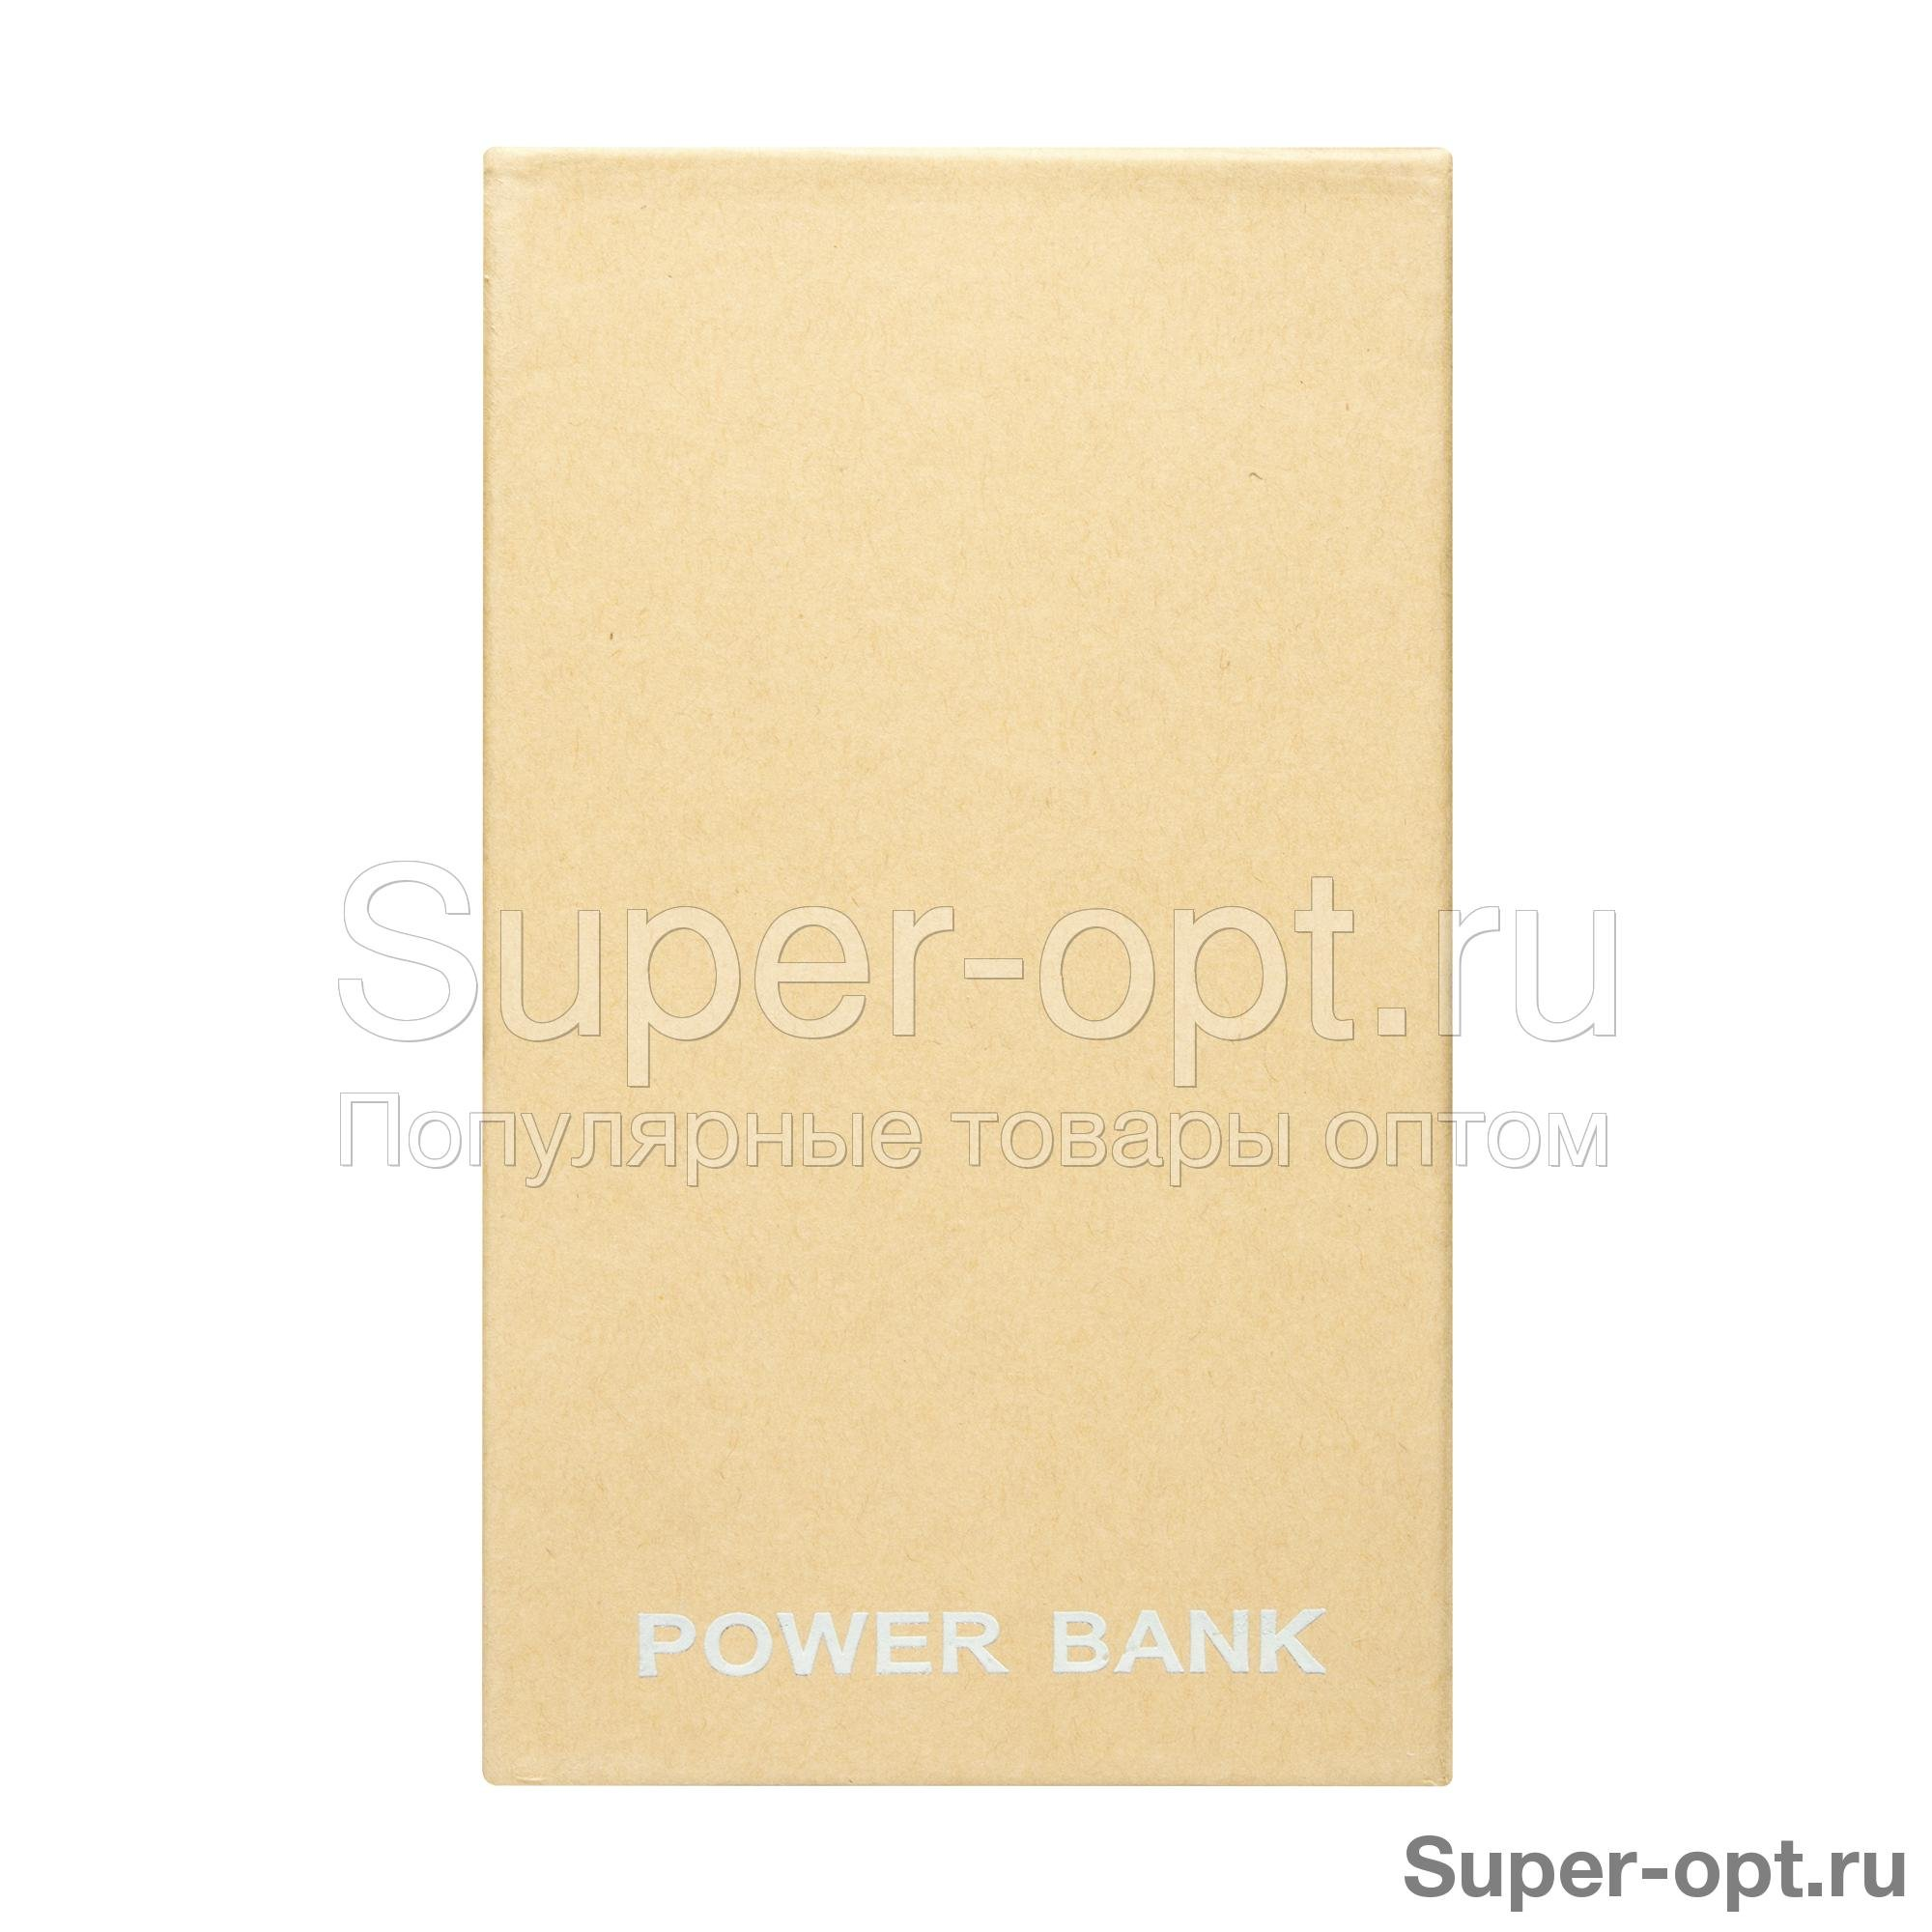 Power Bank Mi 30000 mAh